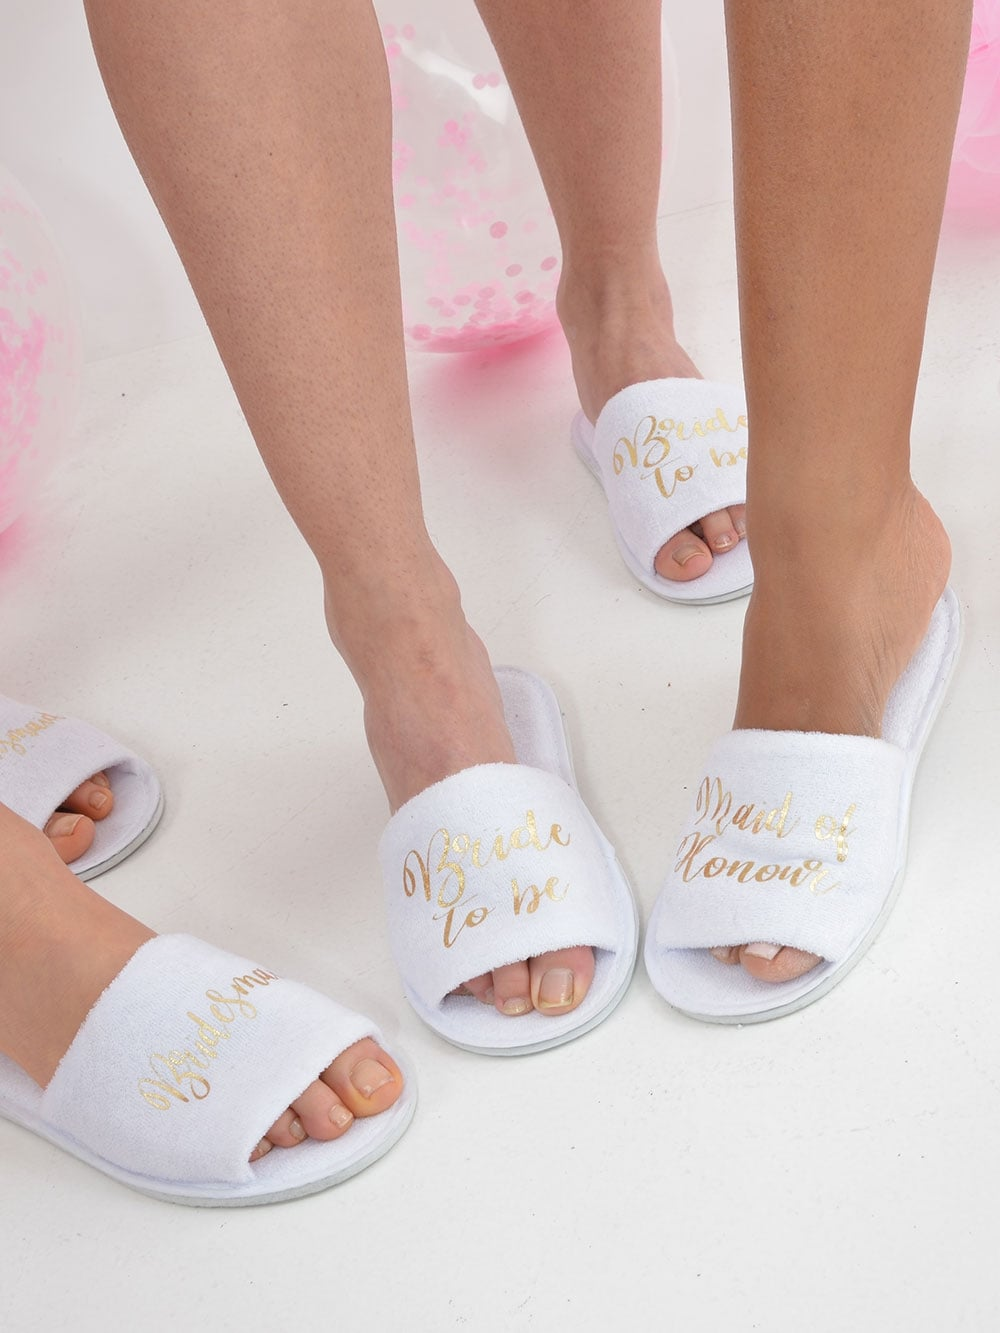 dfc3fff382ef6 Hen Party Superstore Personalised Bridal Party Spa Slippers ...